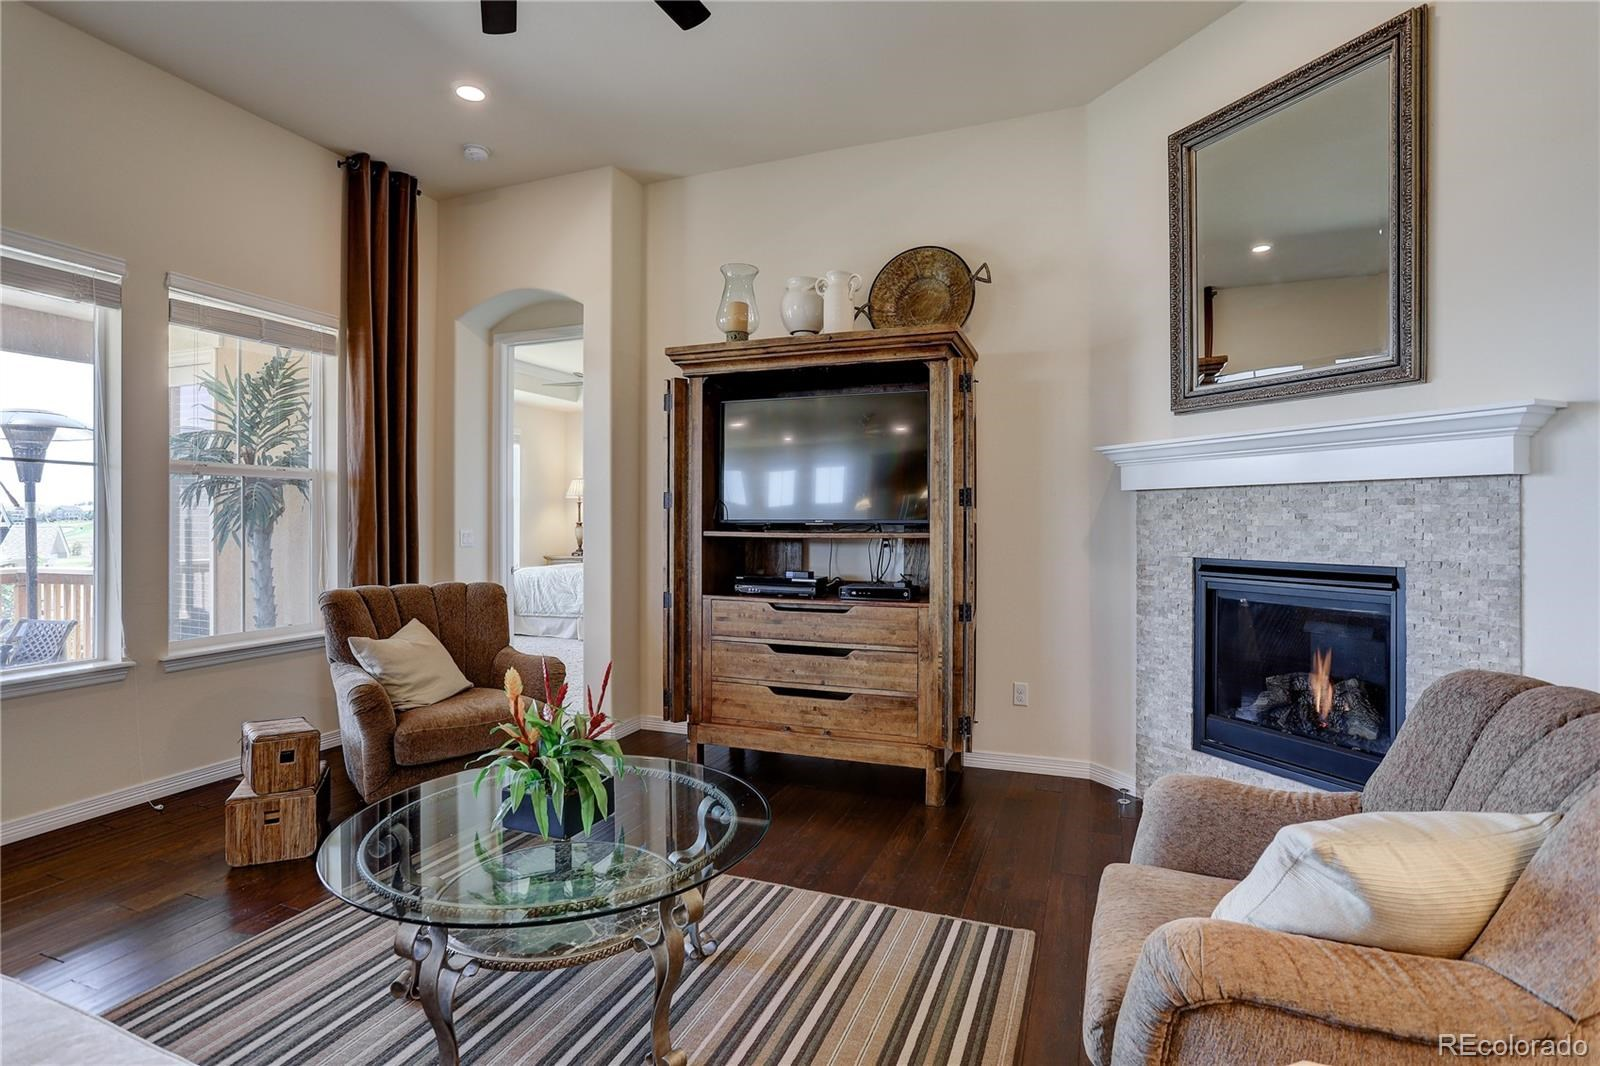 MLS# 8545425 - 6 - 7598 S Country Club Parkway, Aurora, CO 80016